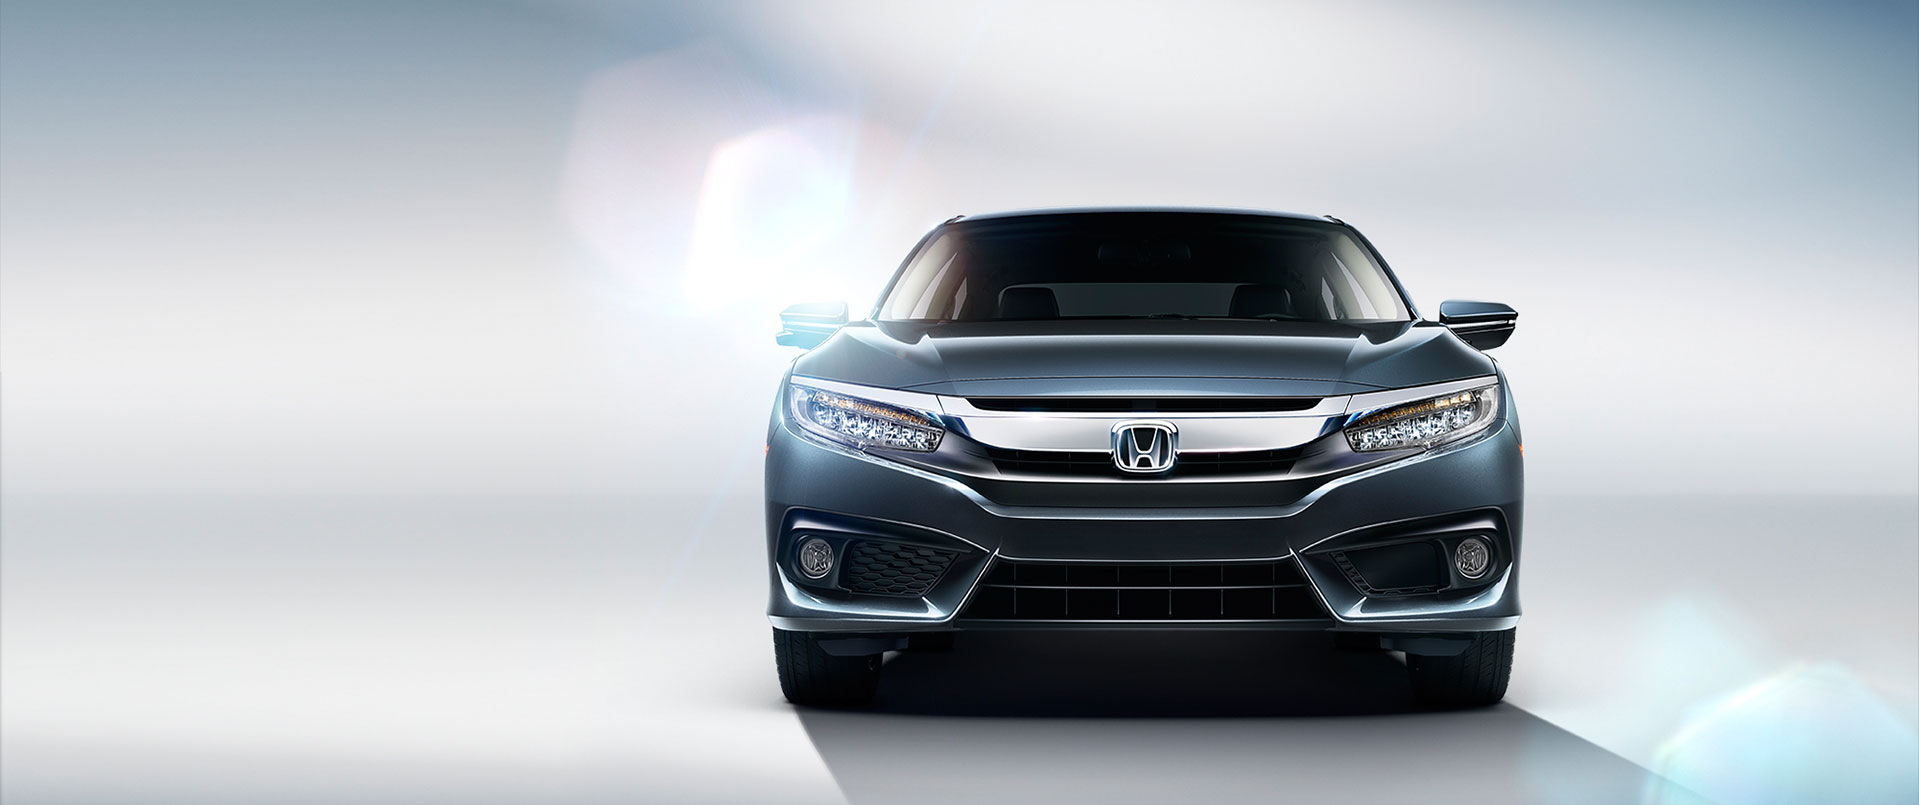 New honda civic deals in sumner wa for Honda civic specials